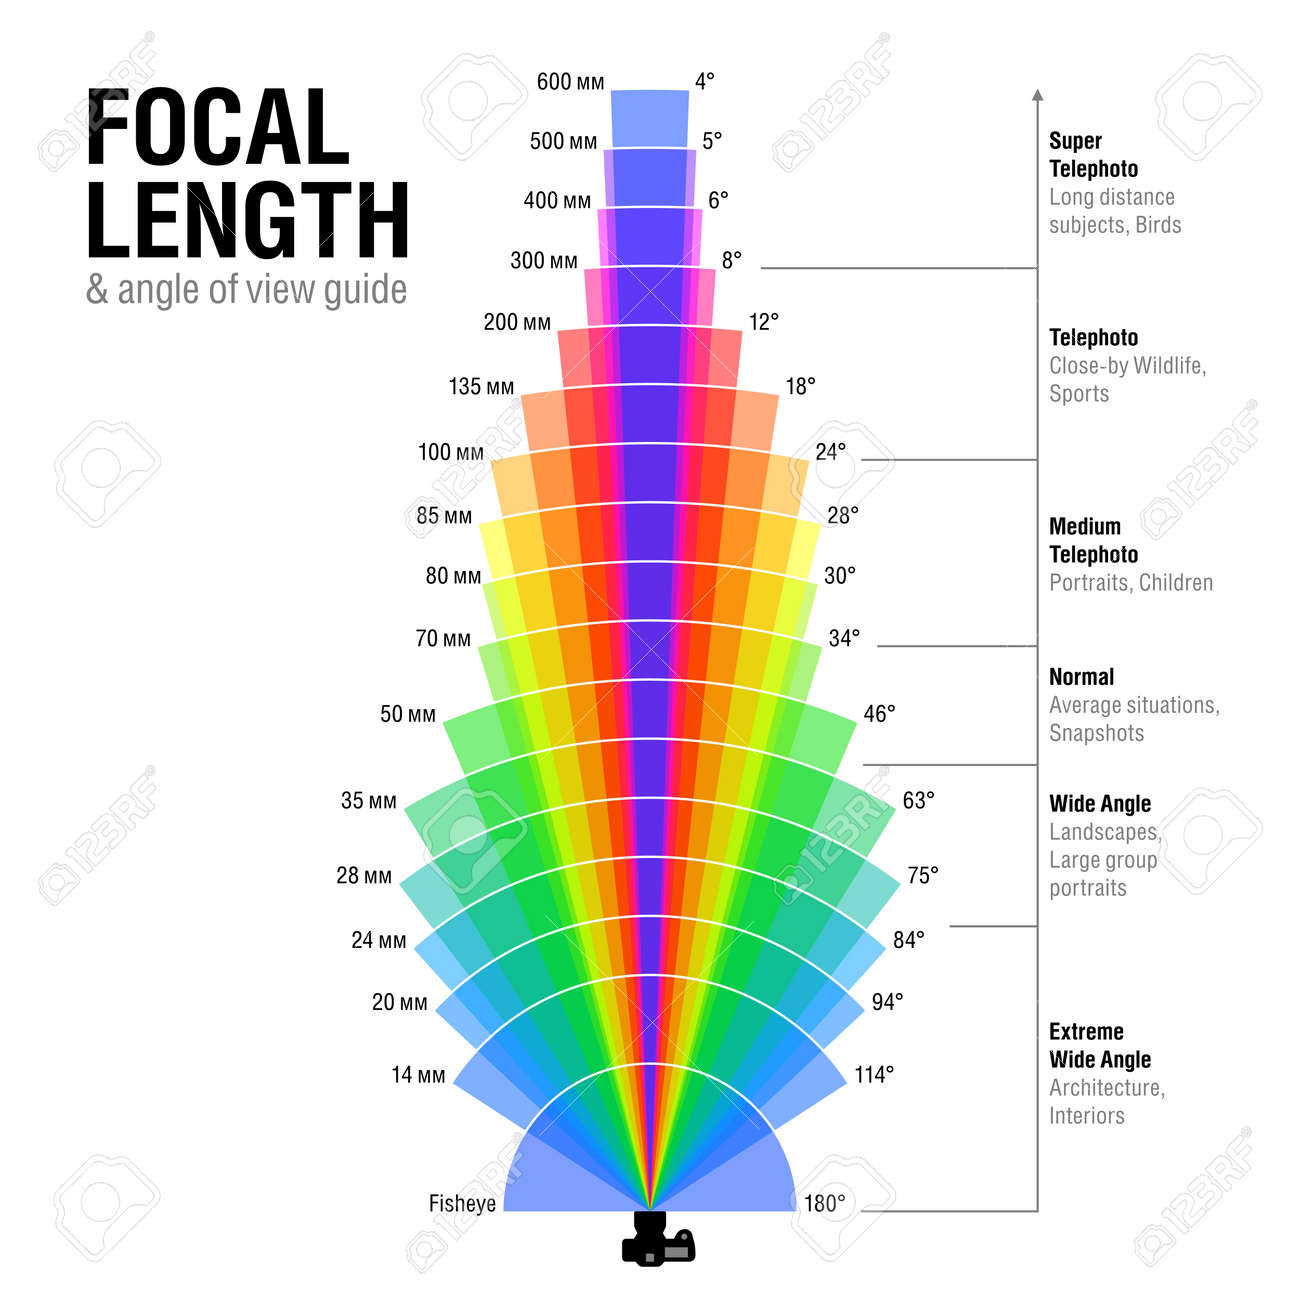 Focal length and angle of view guide - 61124612